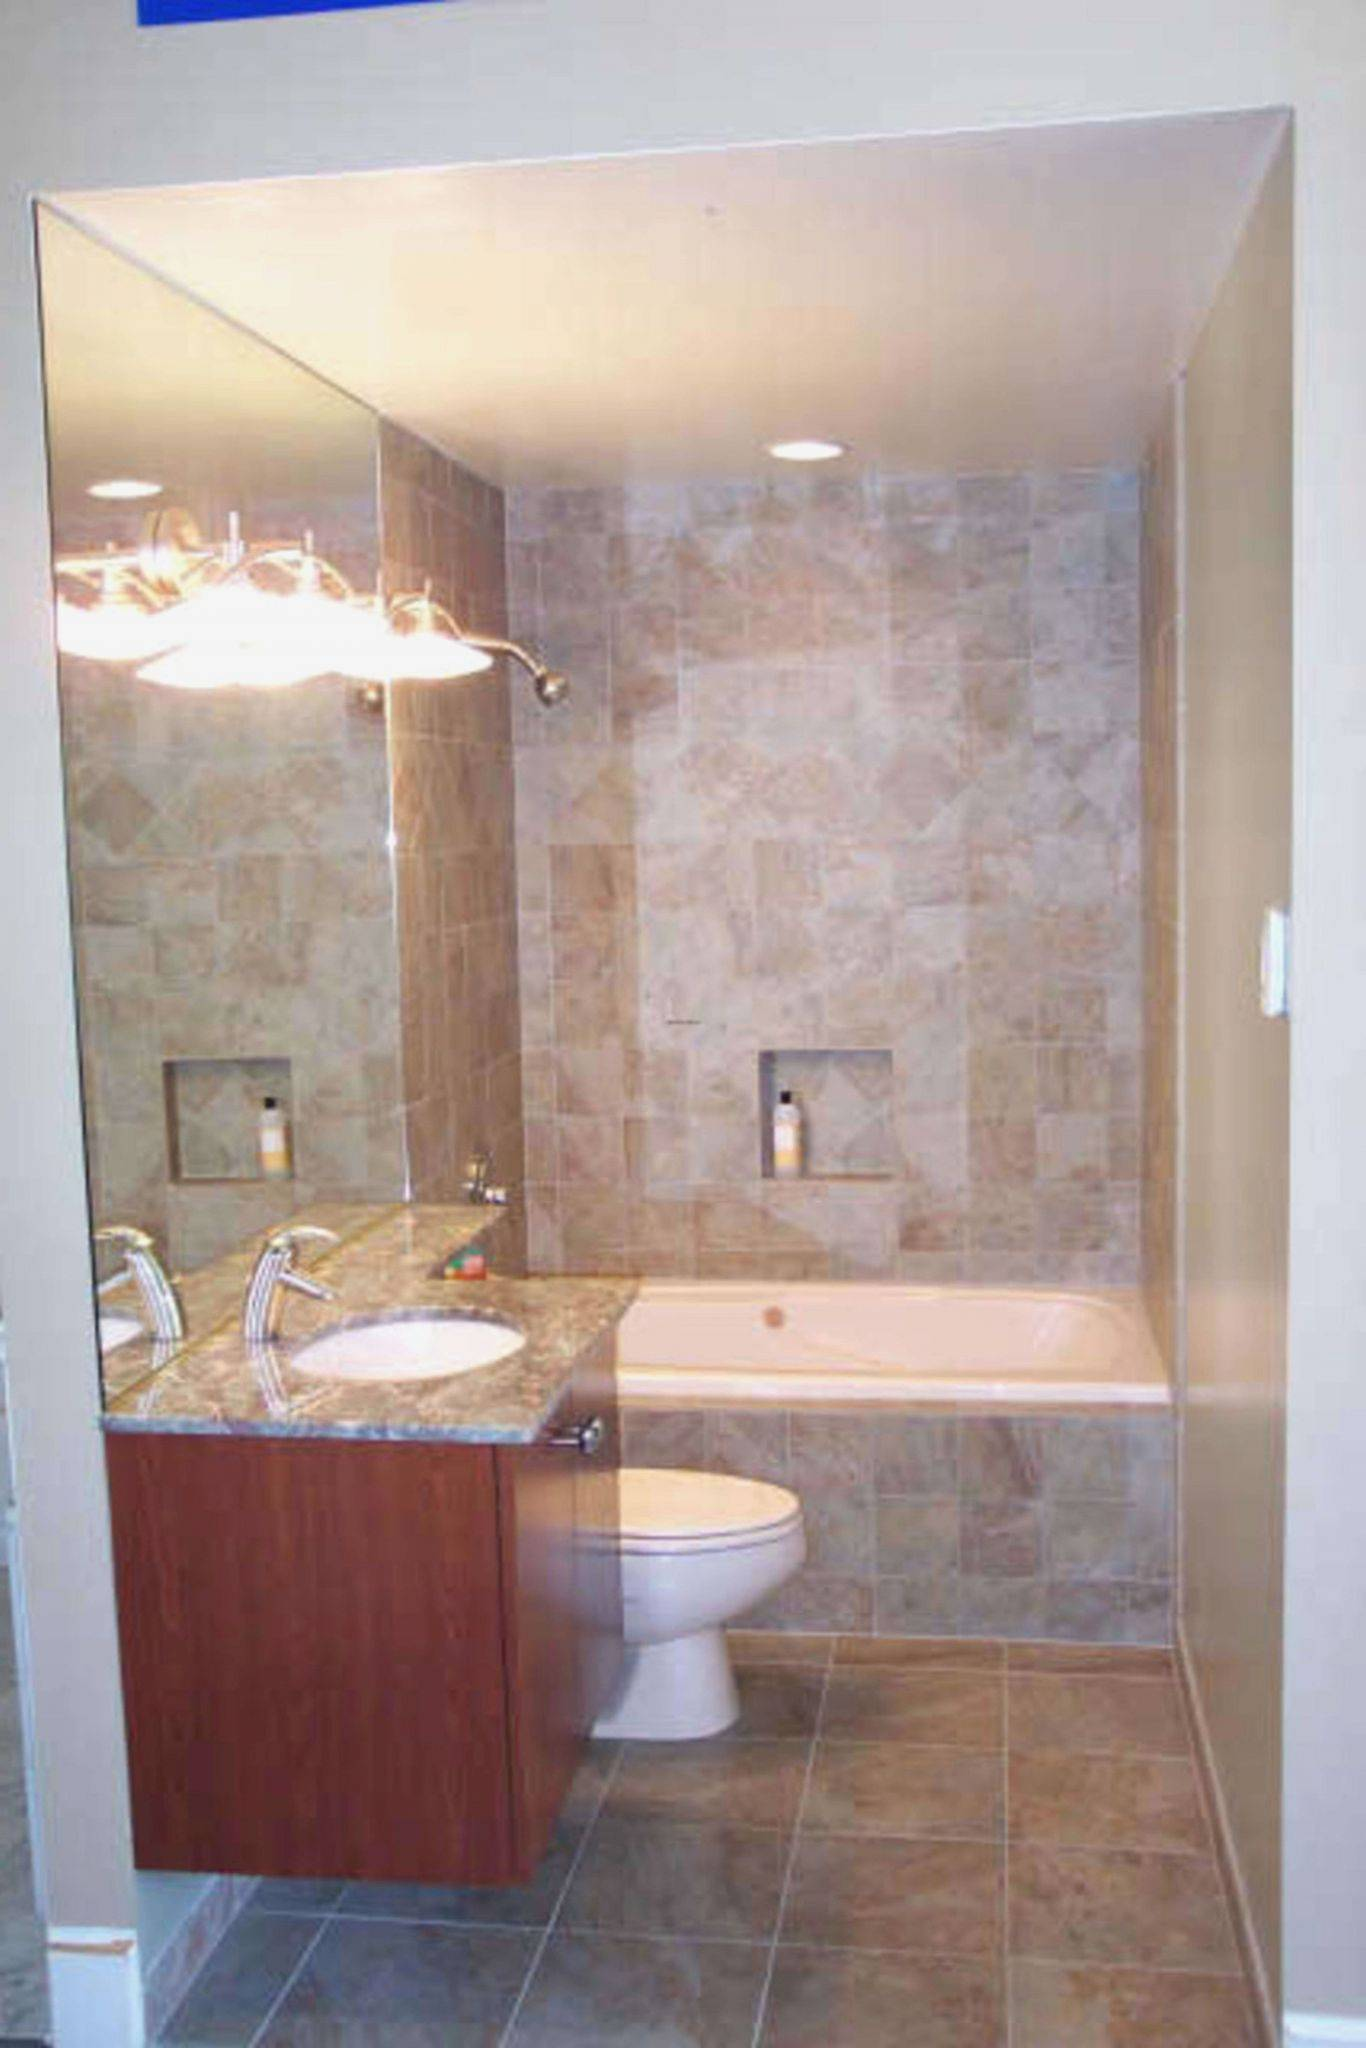 small bathroom plans or small bathroom layout with tub of small bathroom plans